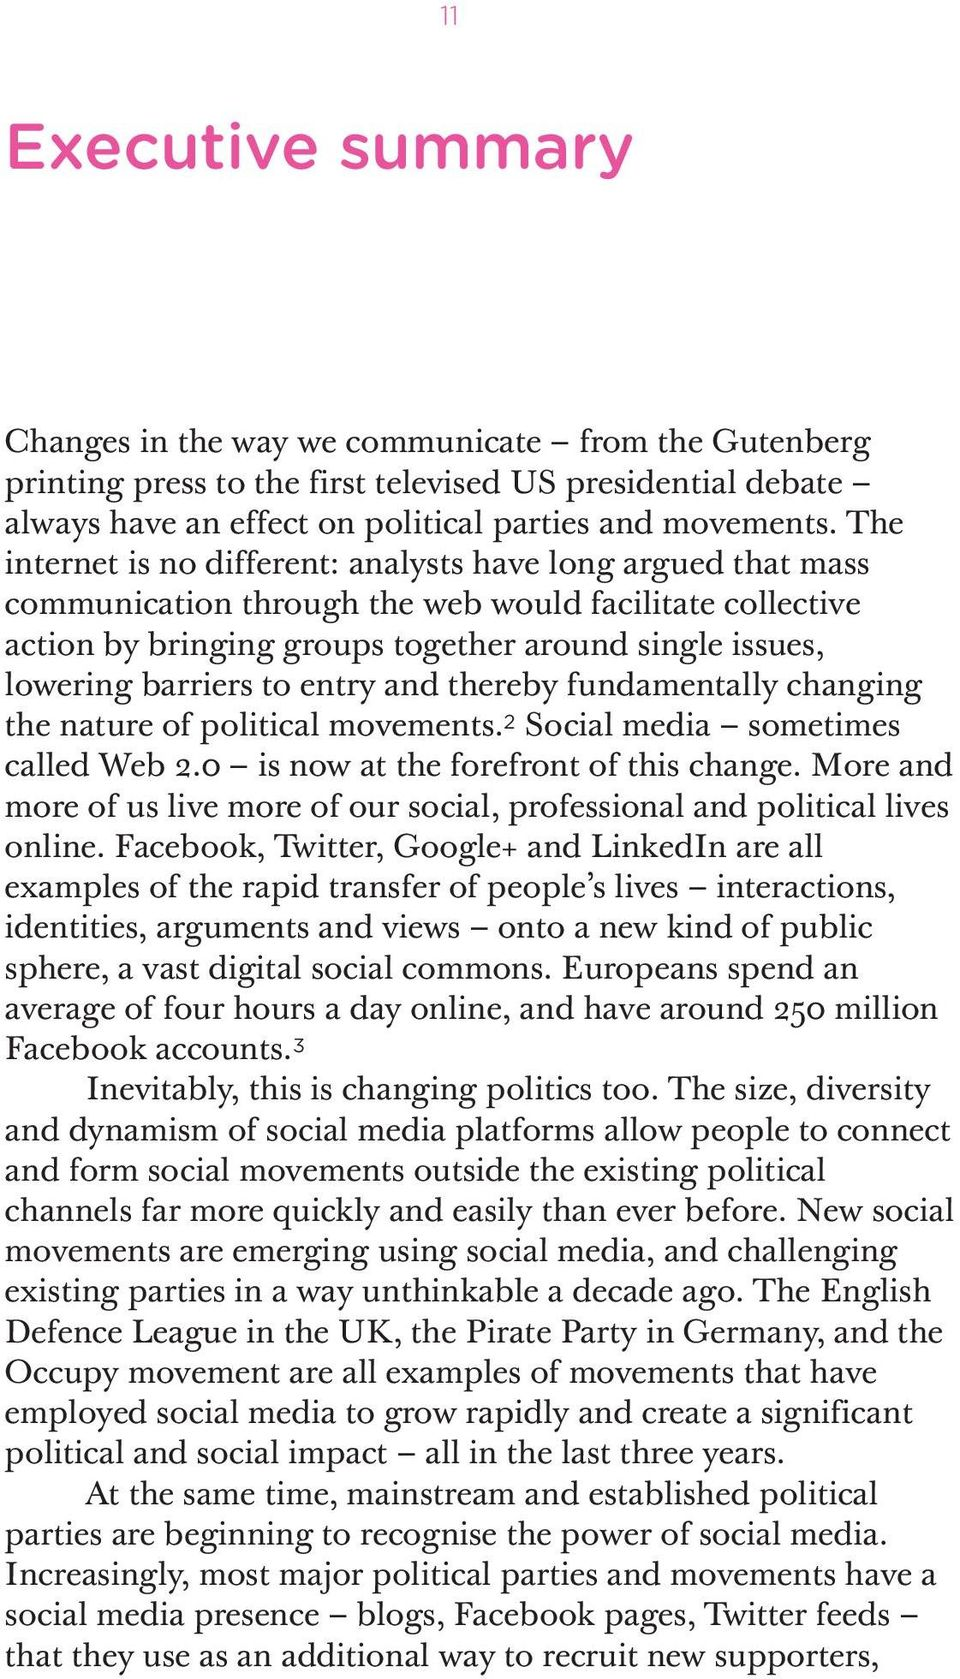 to entry and thereby fundamentally changing the nature of political movements. 2 Social media sometimes called Web 2.0 is now at the forefront of this change.